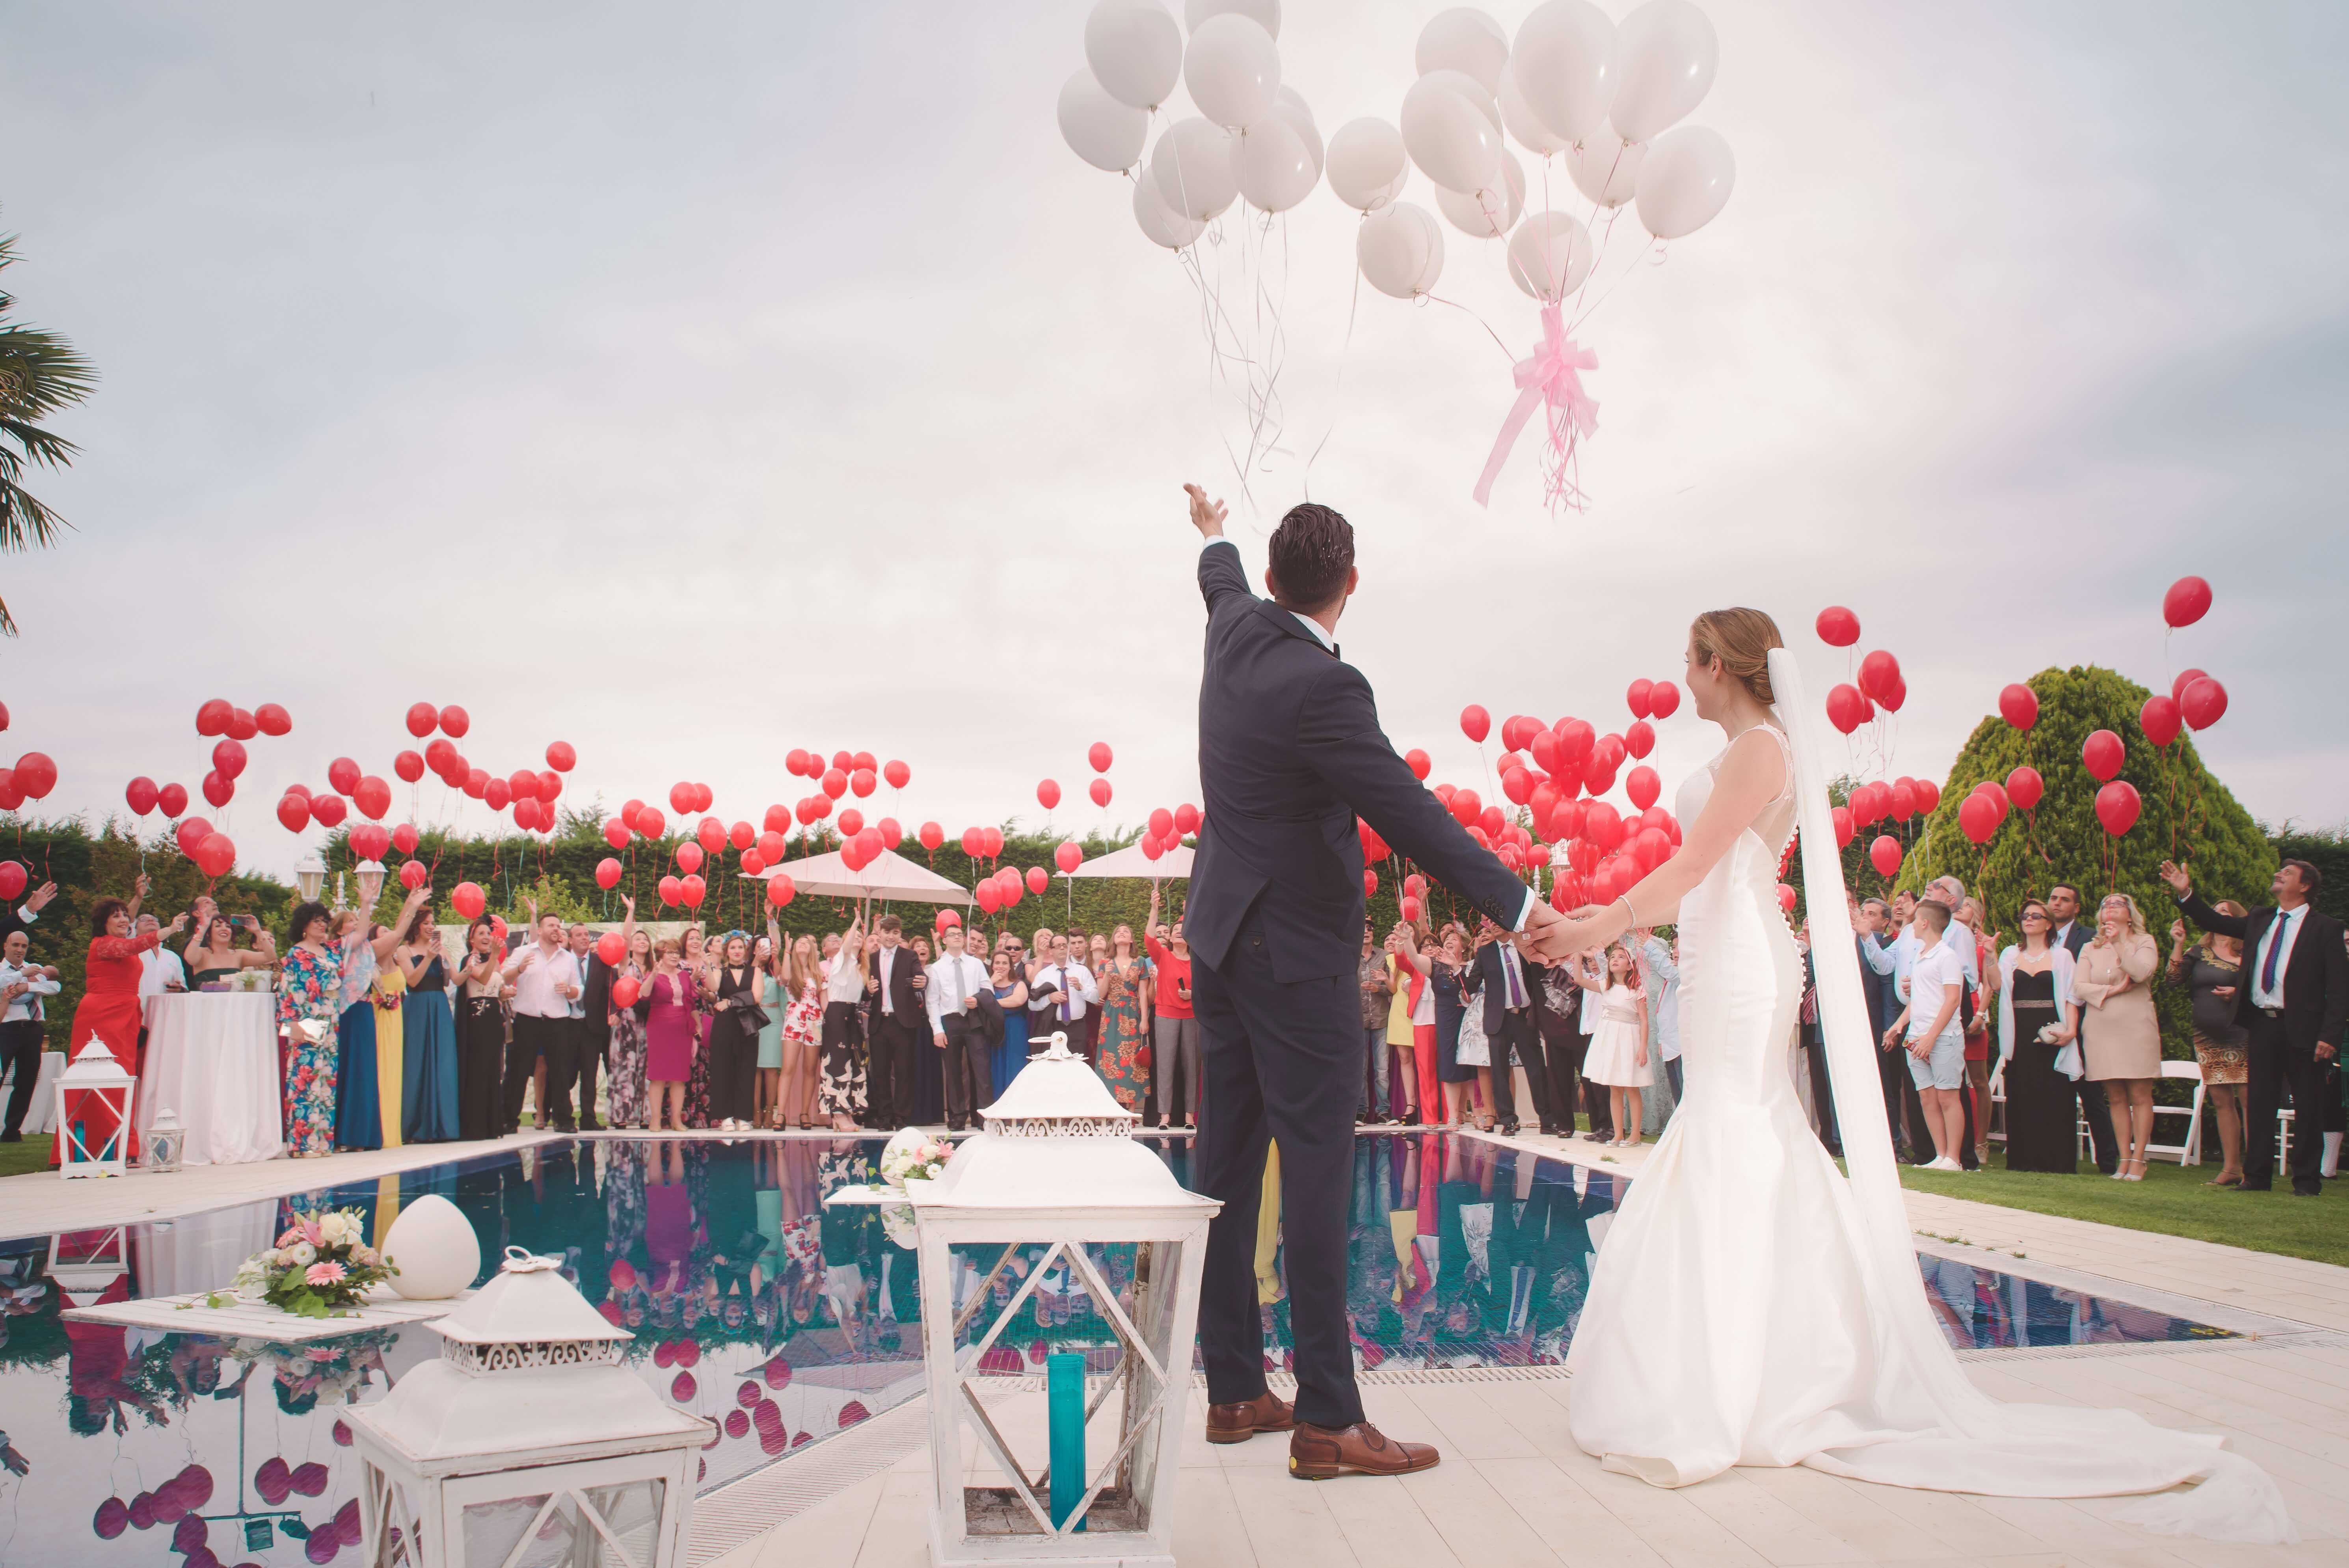 How To Pick The Right Wedding Venue For Your Wedding?